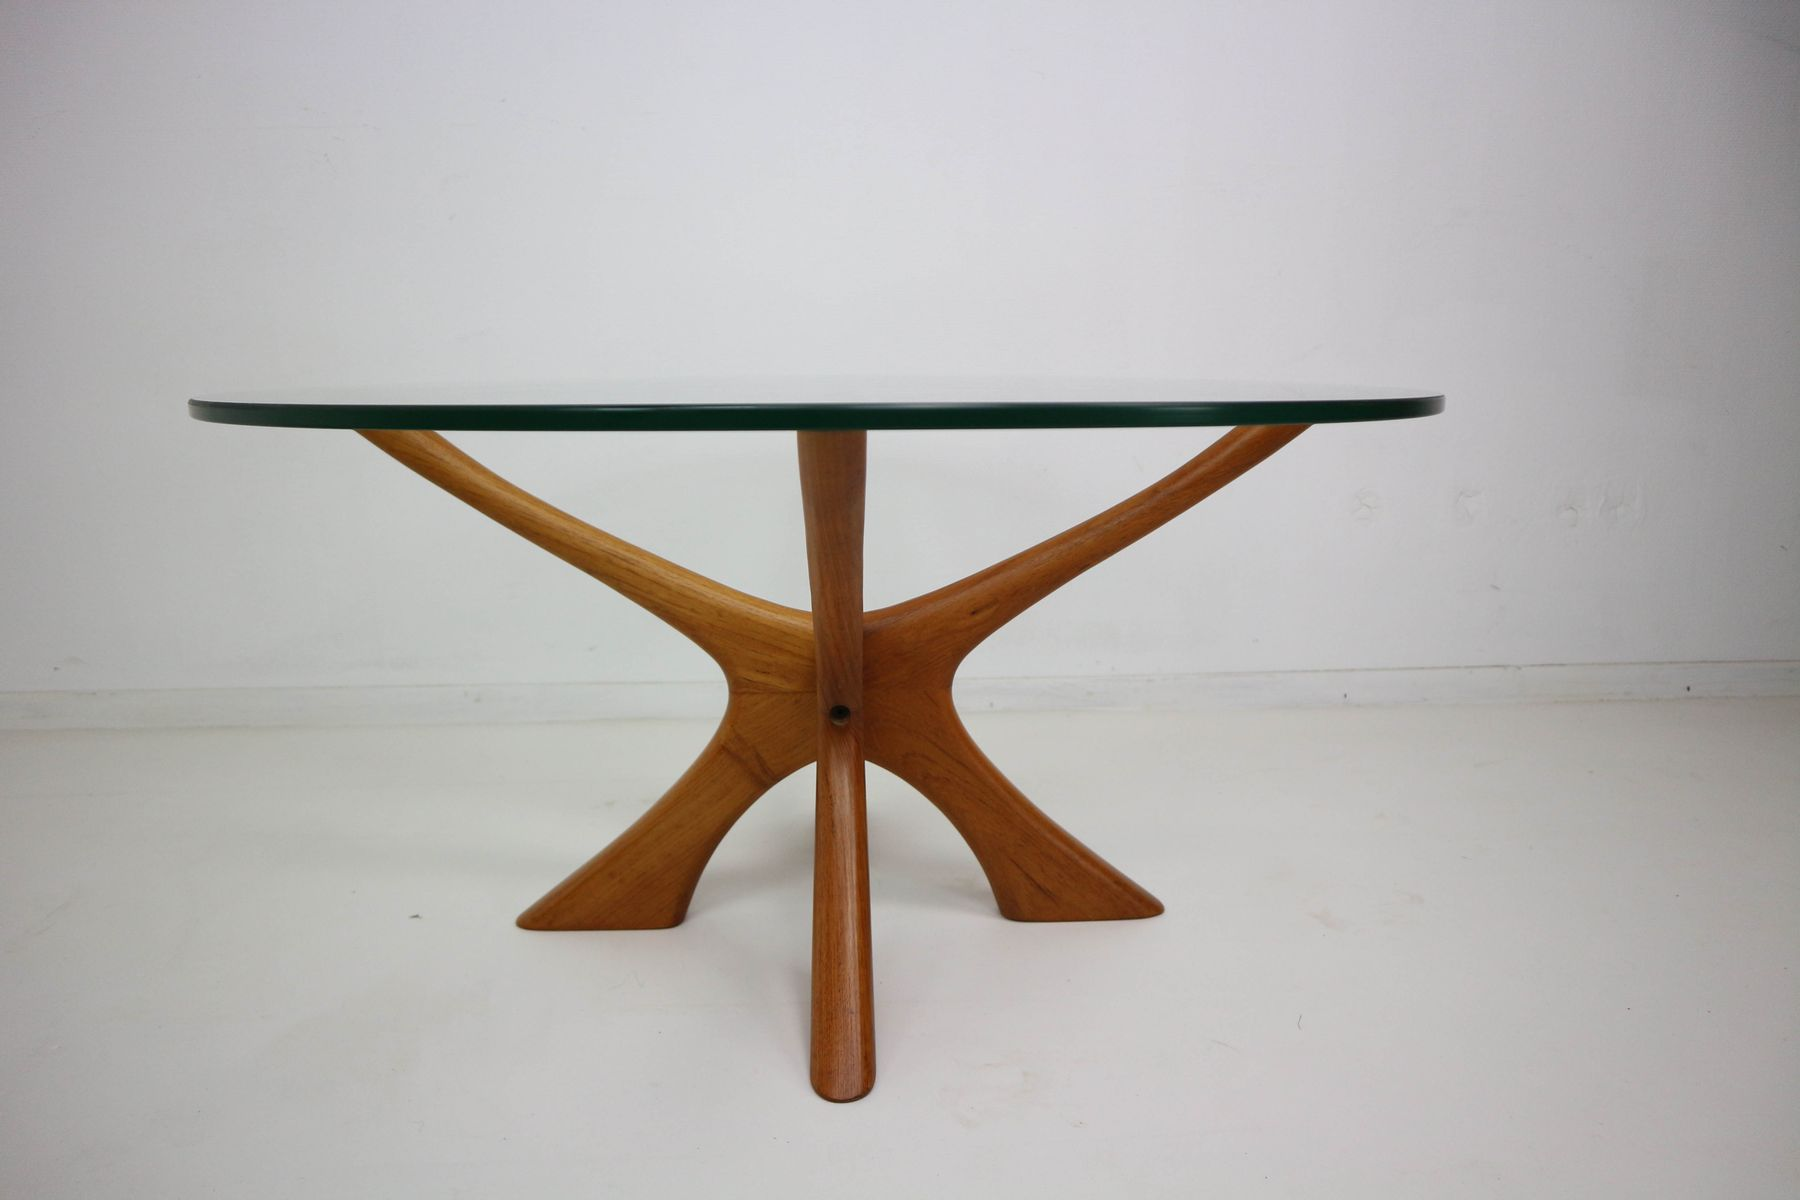 Mid century coffee table by illum wikkels for sren willadsen for mid century coffee table by illum wikkels for sren willadsen geotapseo Choice Image